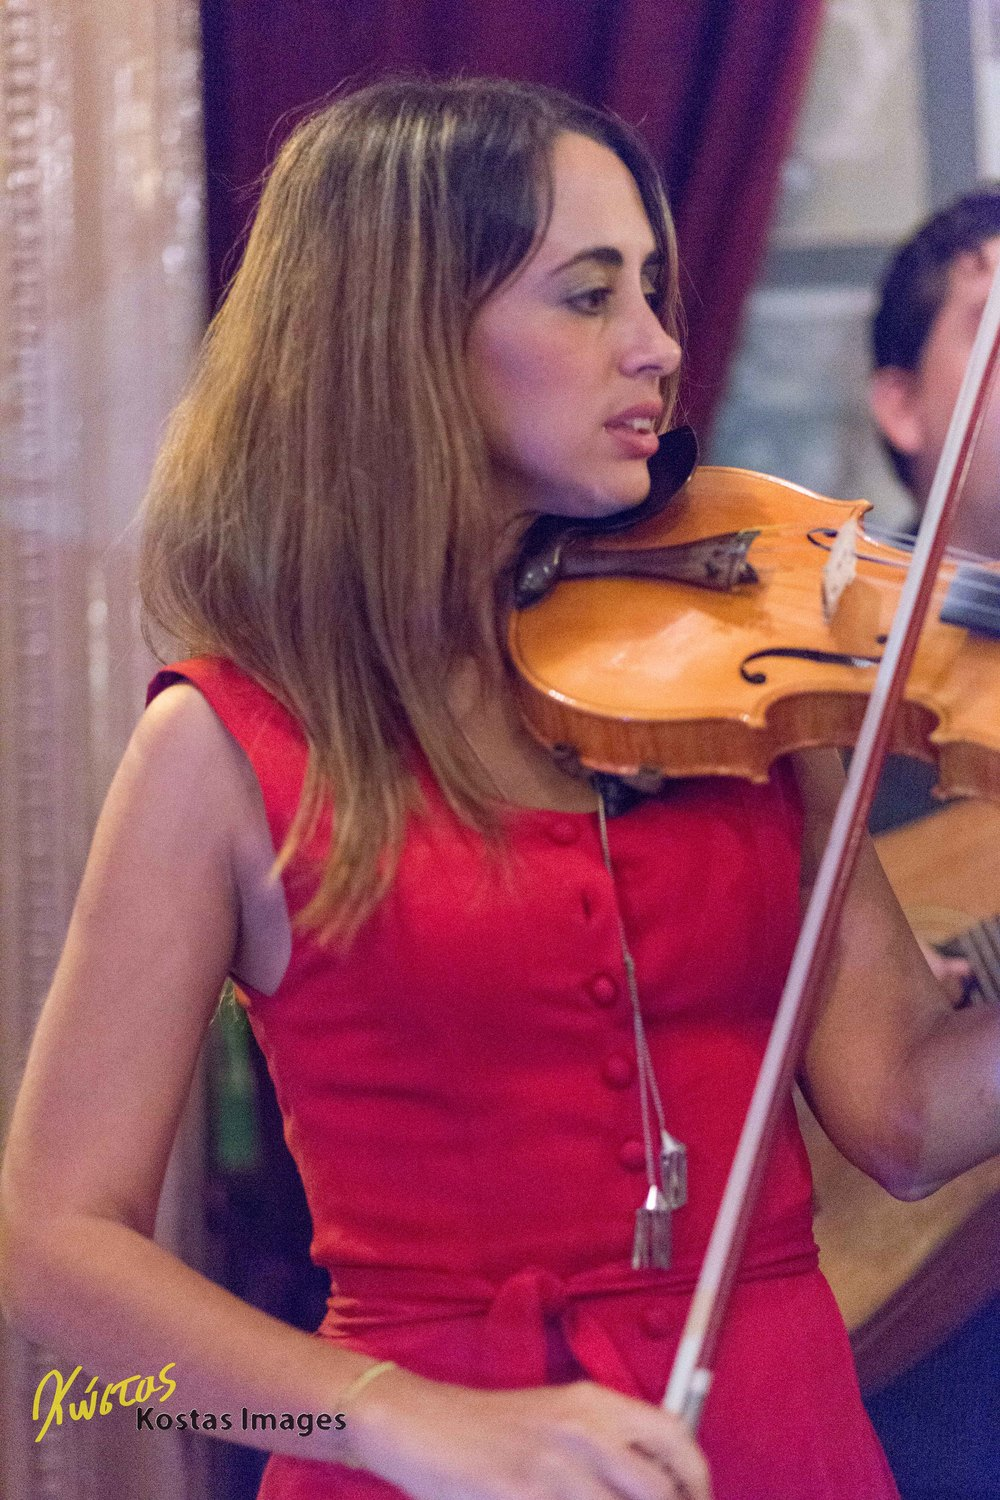 D'Amore group - Violin.jpg